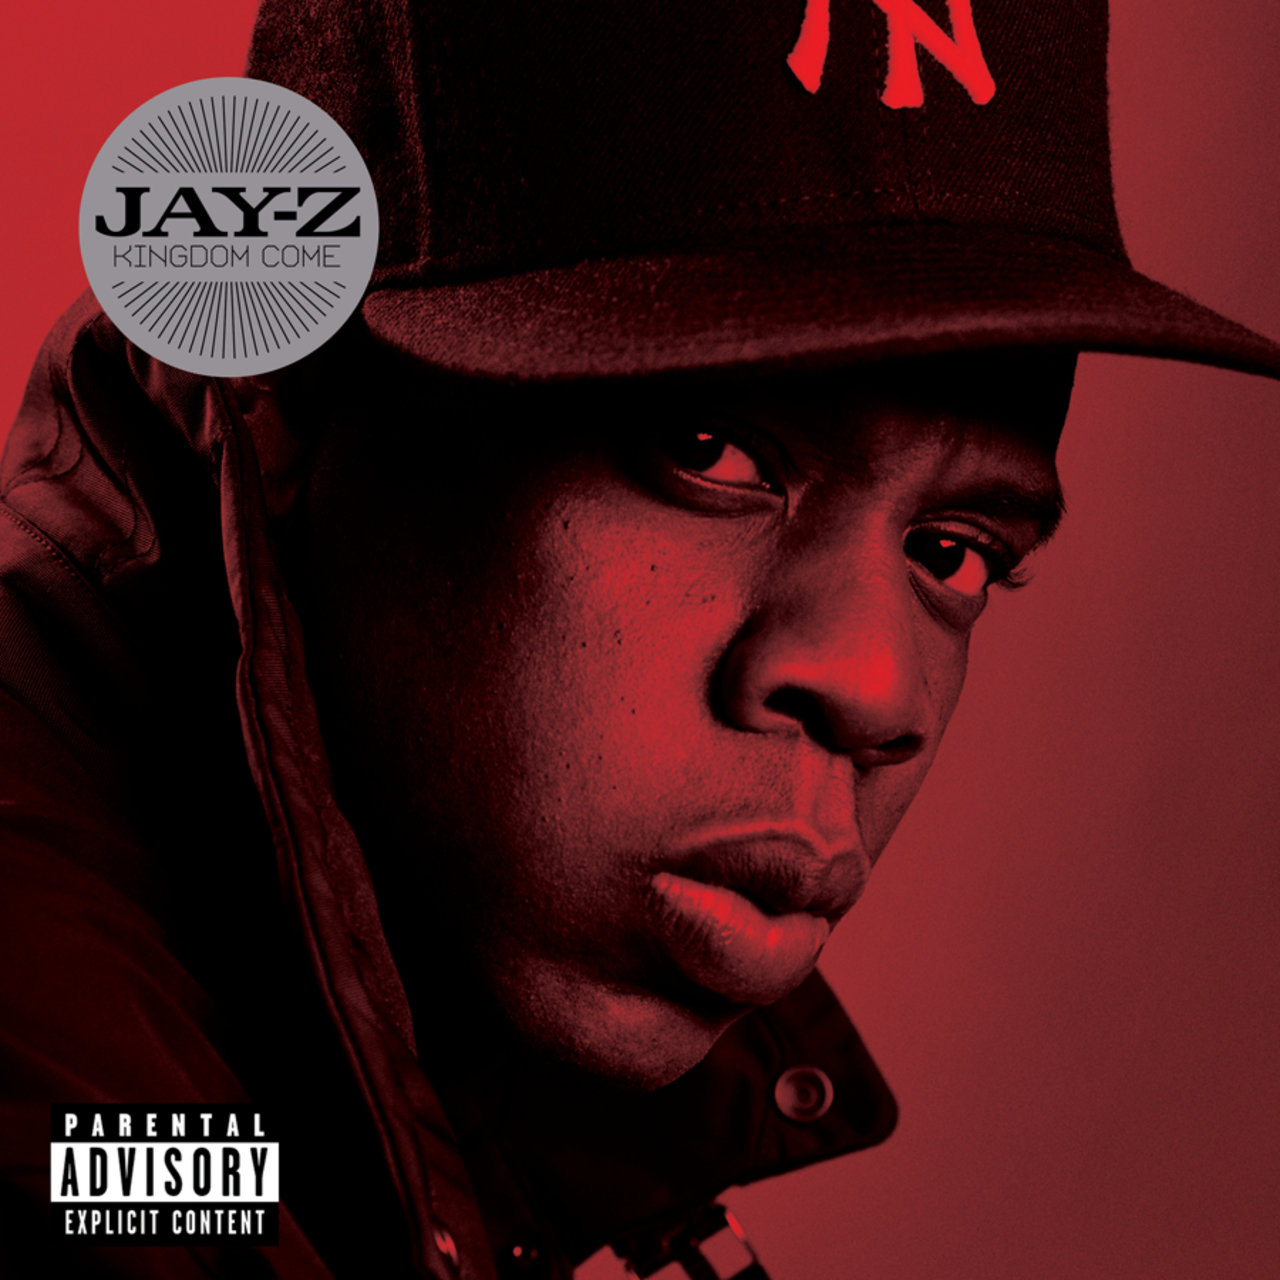 jay-z-kingdom-come-10-years